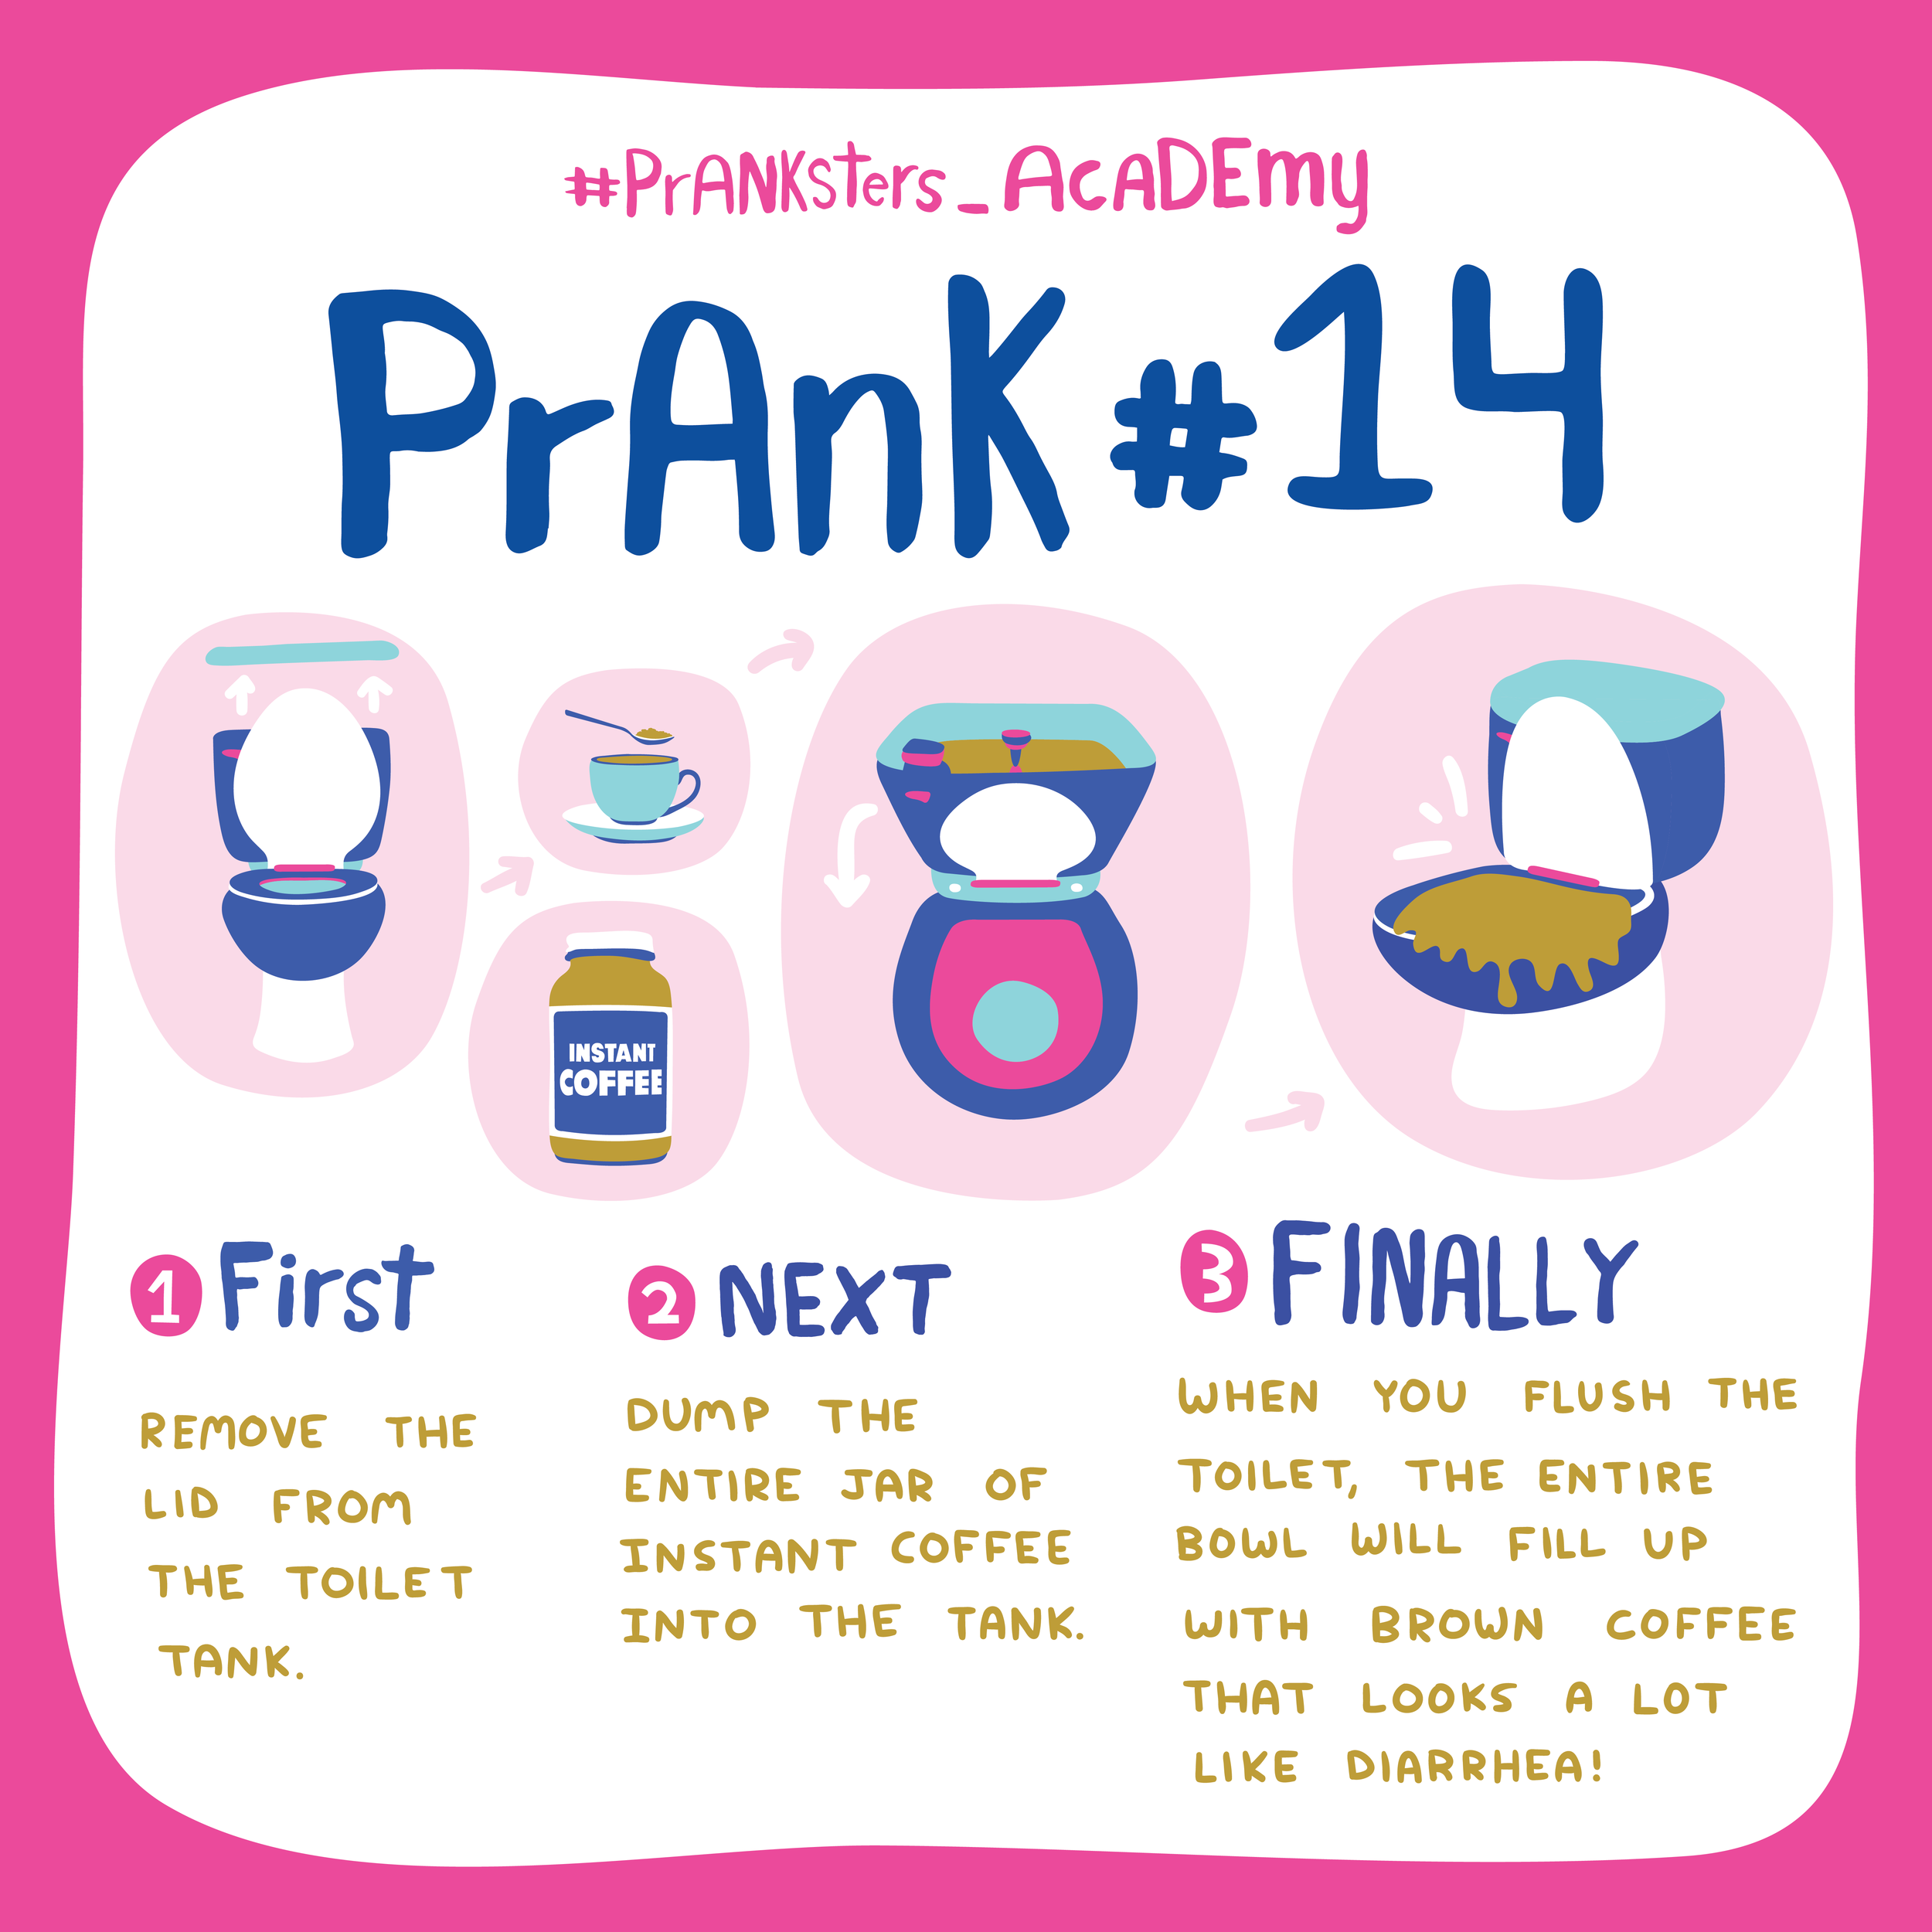 Prank #14: Courtesy Flush